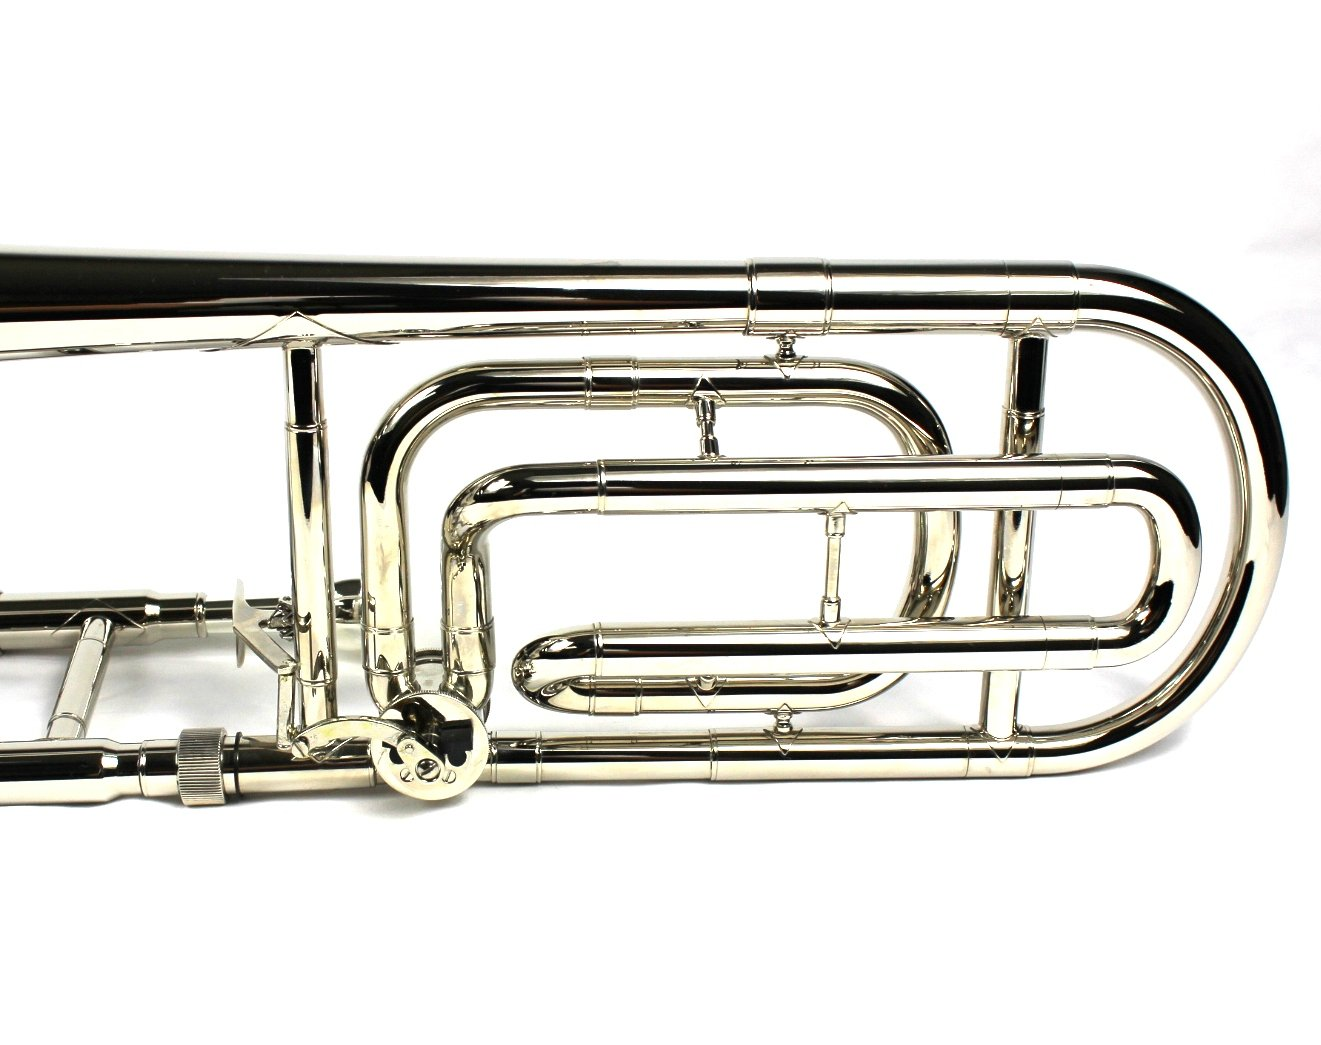 Brand New Bb/F Tenor Trombone w/ Case and Mouthpiece- Nickel Plated Finish by Moz (Image #7)